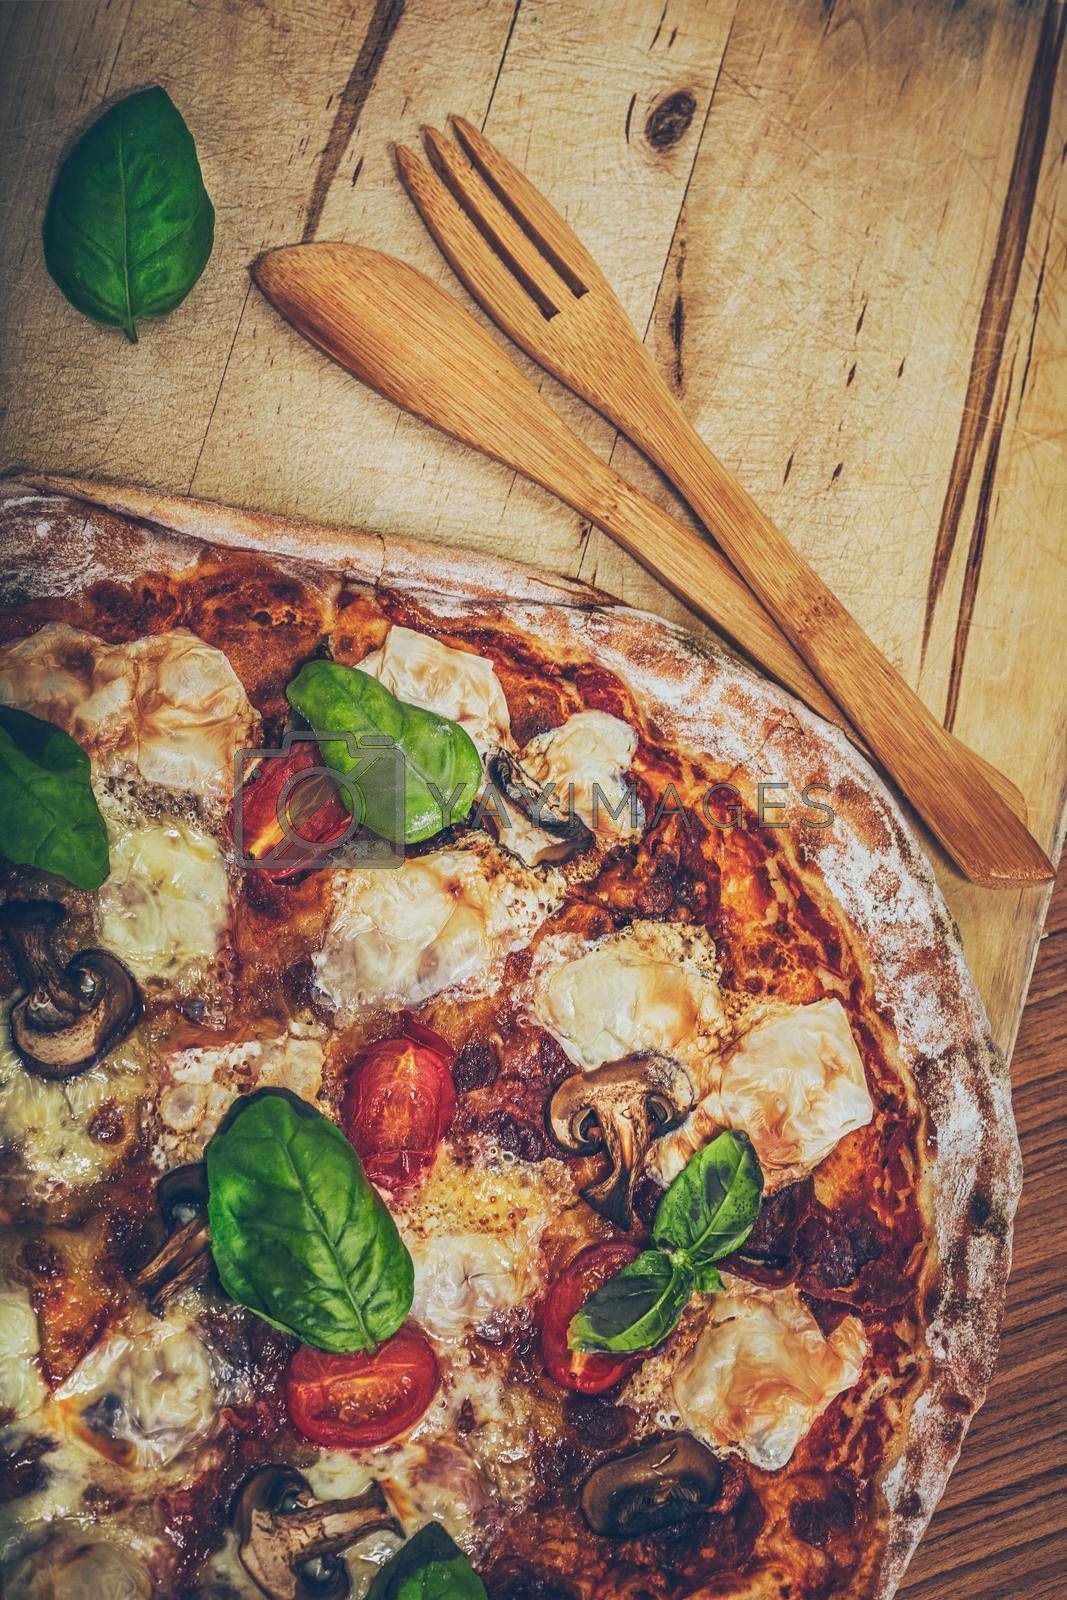 Food Background. Tasty Hot Pizza Served with Wooden Utensils. Delicious Fast Food. Traditional Italian Dish.